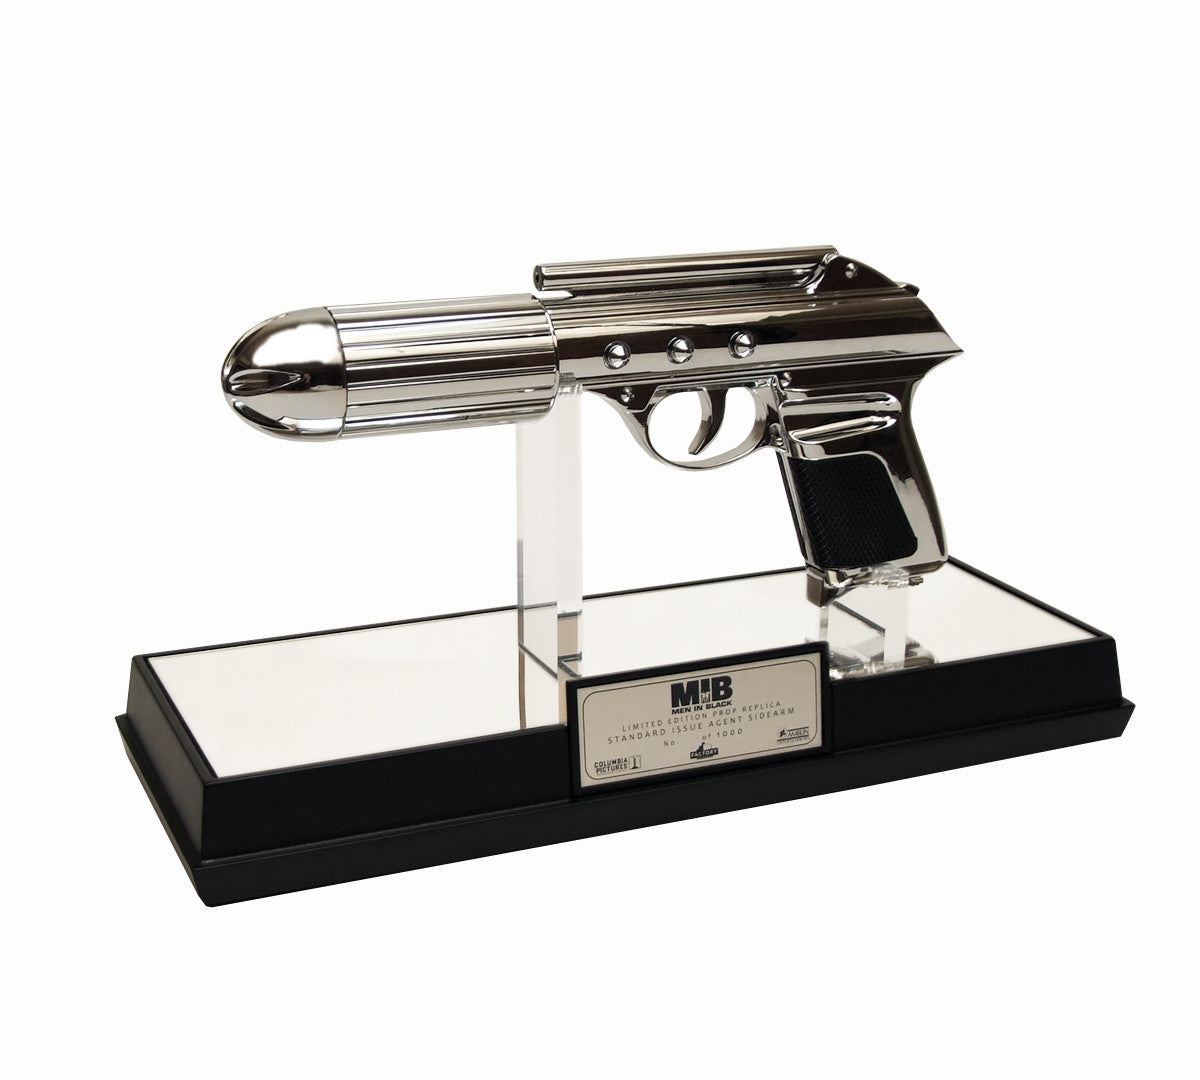 Men In Black - Standard Issue Agent Sidearm (J2) Limited Edition Prop Replica